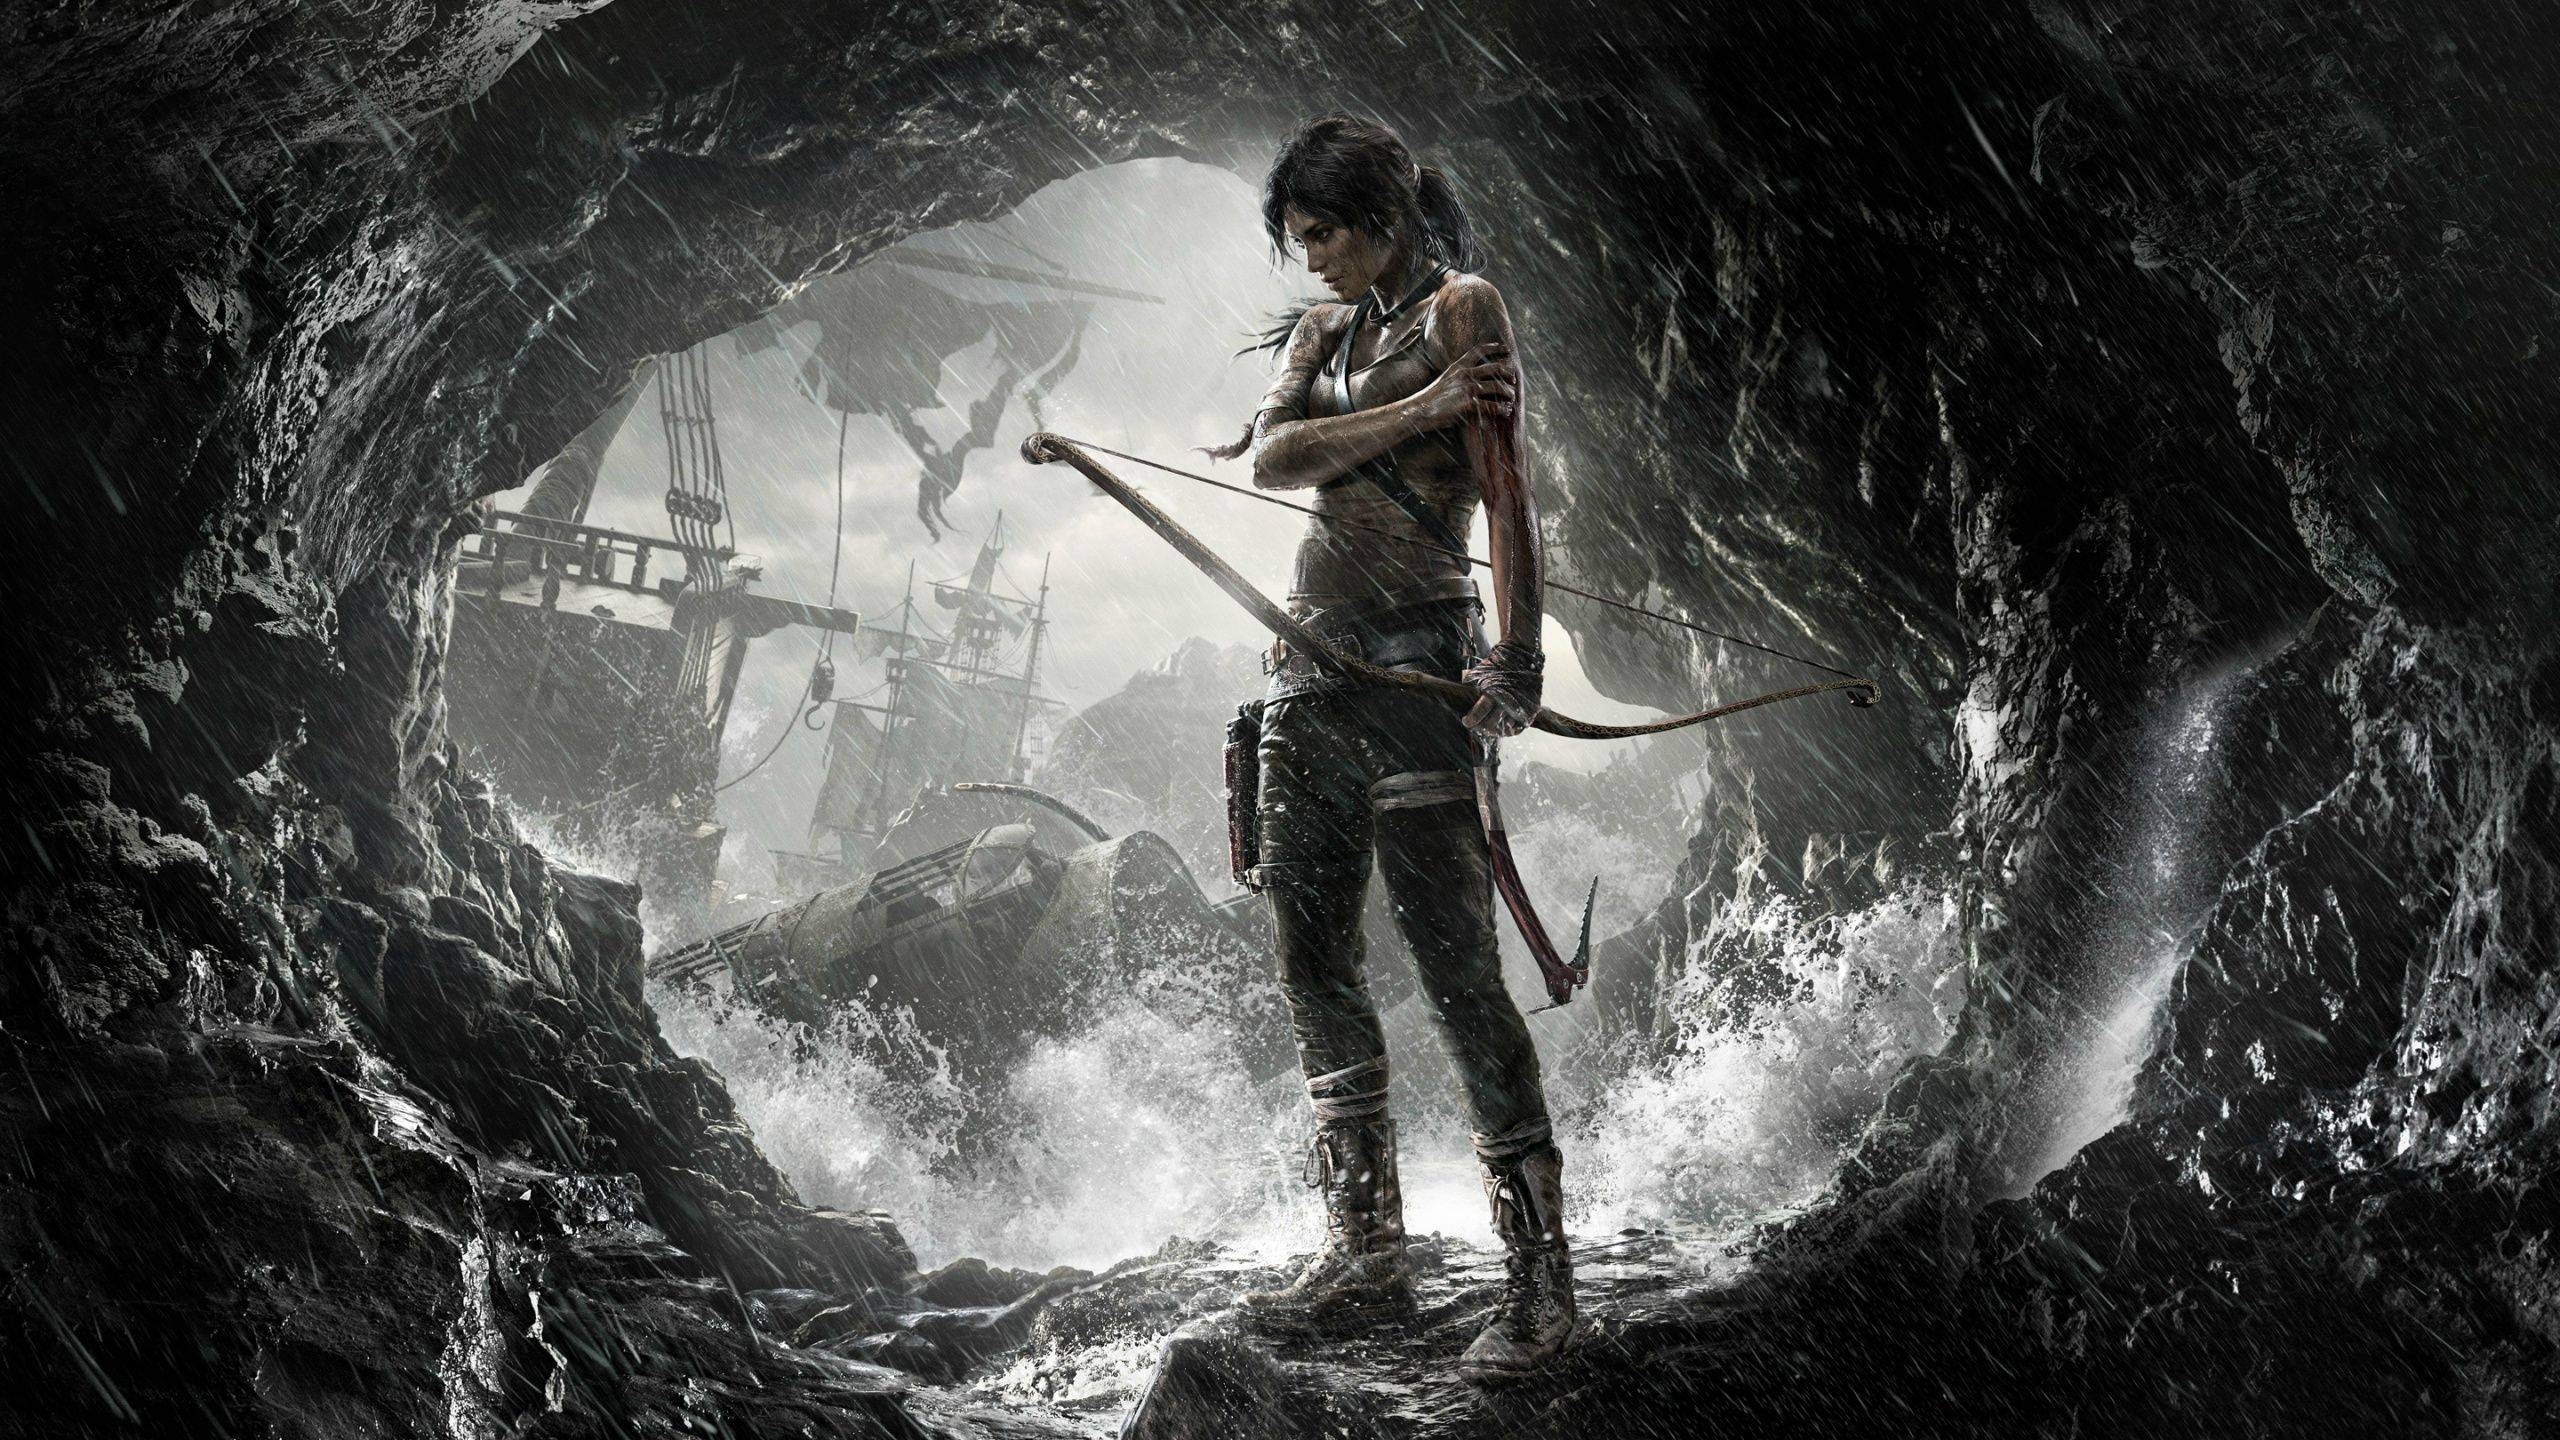 550 tomb raider hd wallpapers | background images - wallpaper abyss